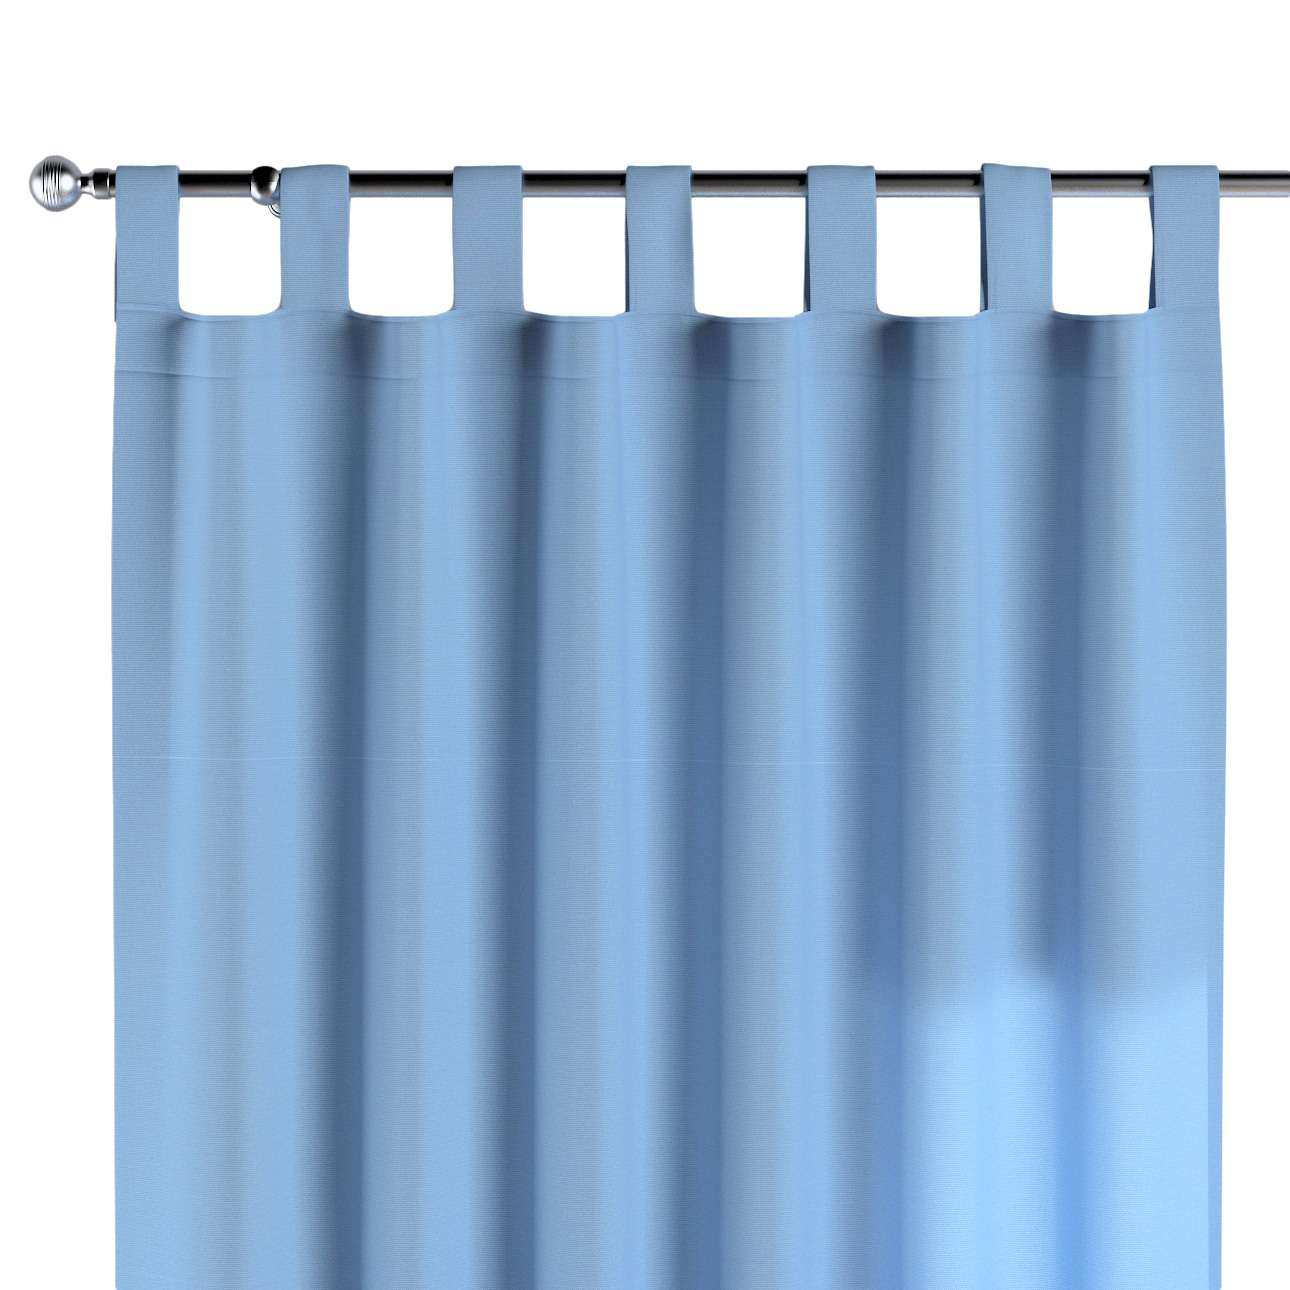 Tab top curtains 130 × 260 cm (51 × 102 inch) in collection Loneta , fabric: 133-21